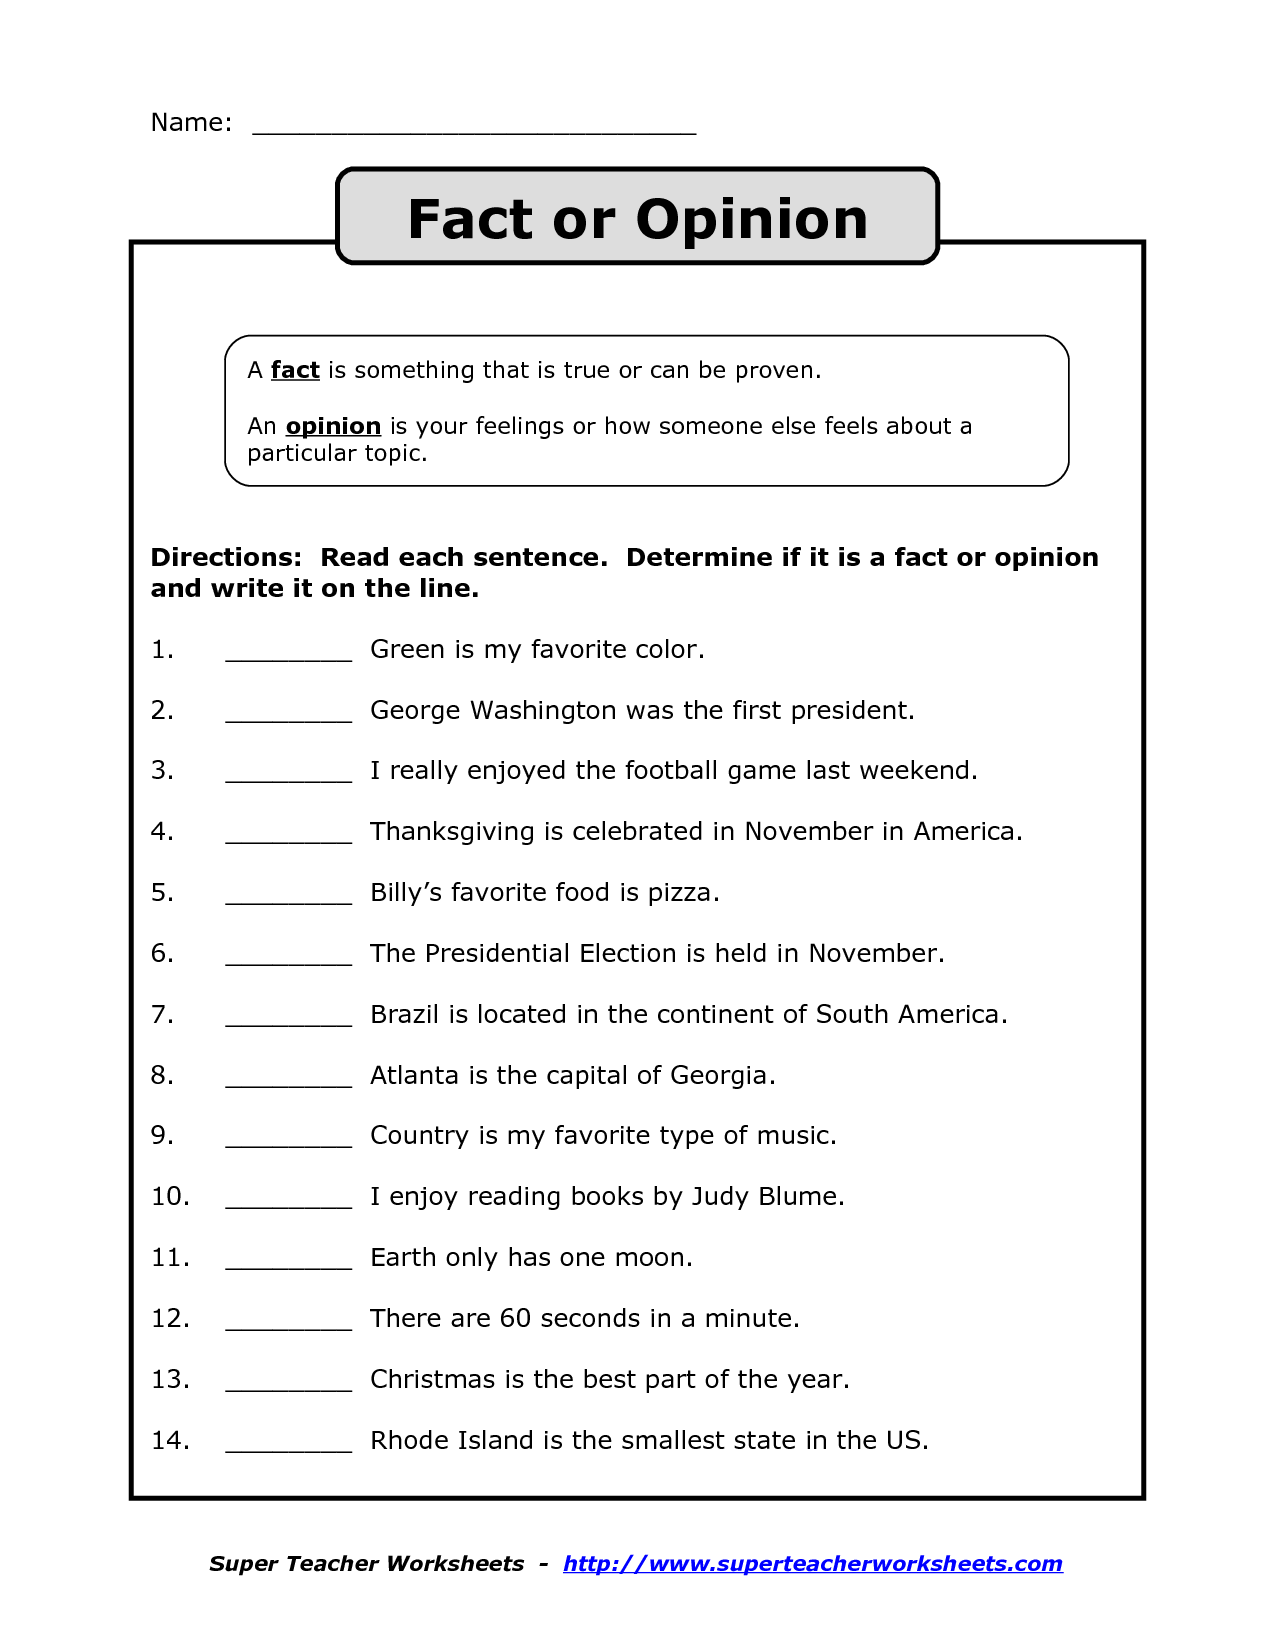 Fact Vs Opinion Worksheet